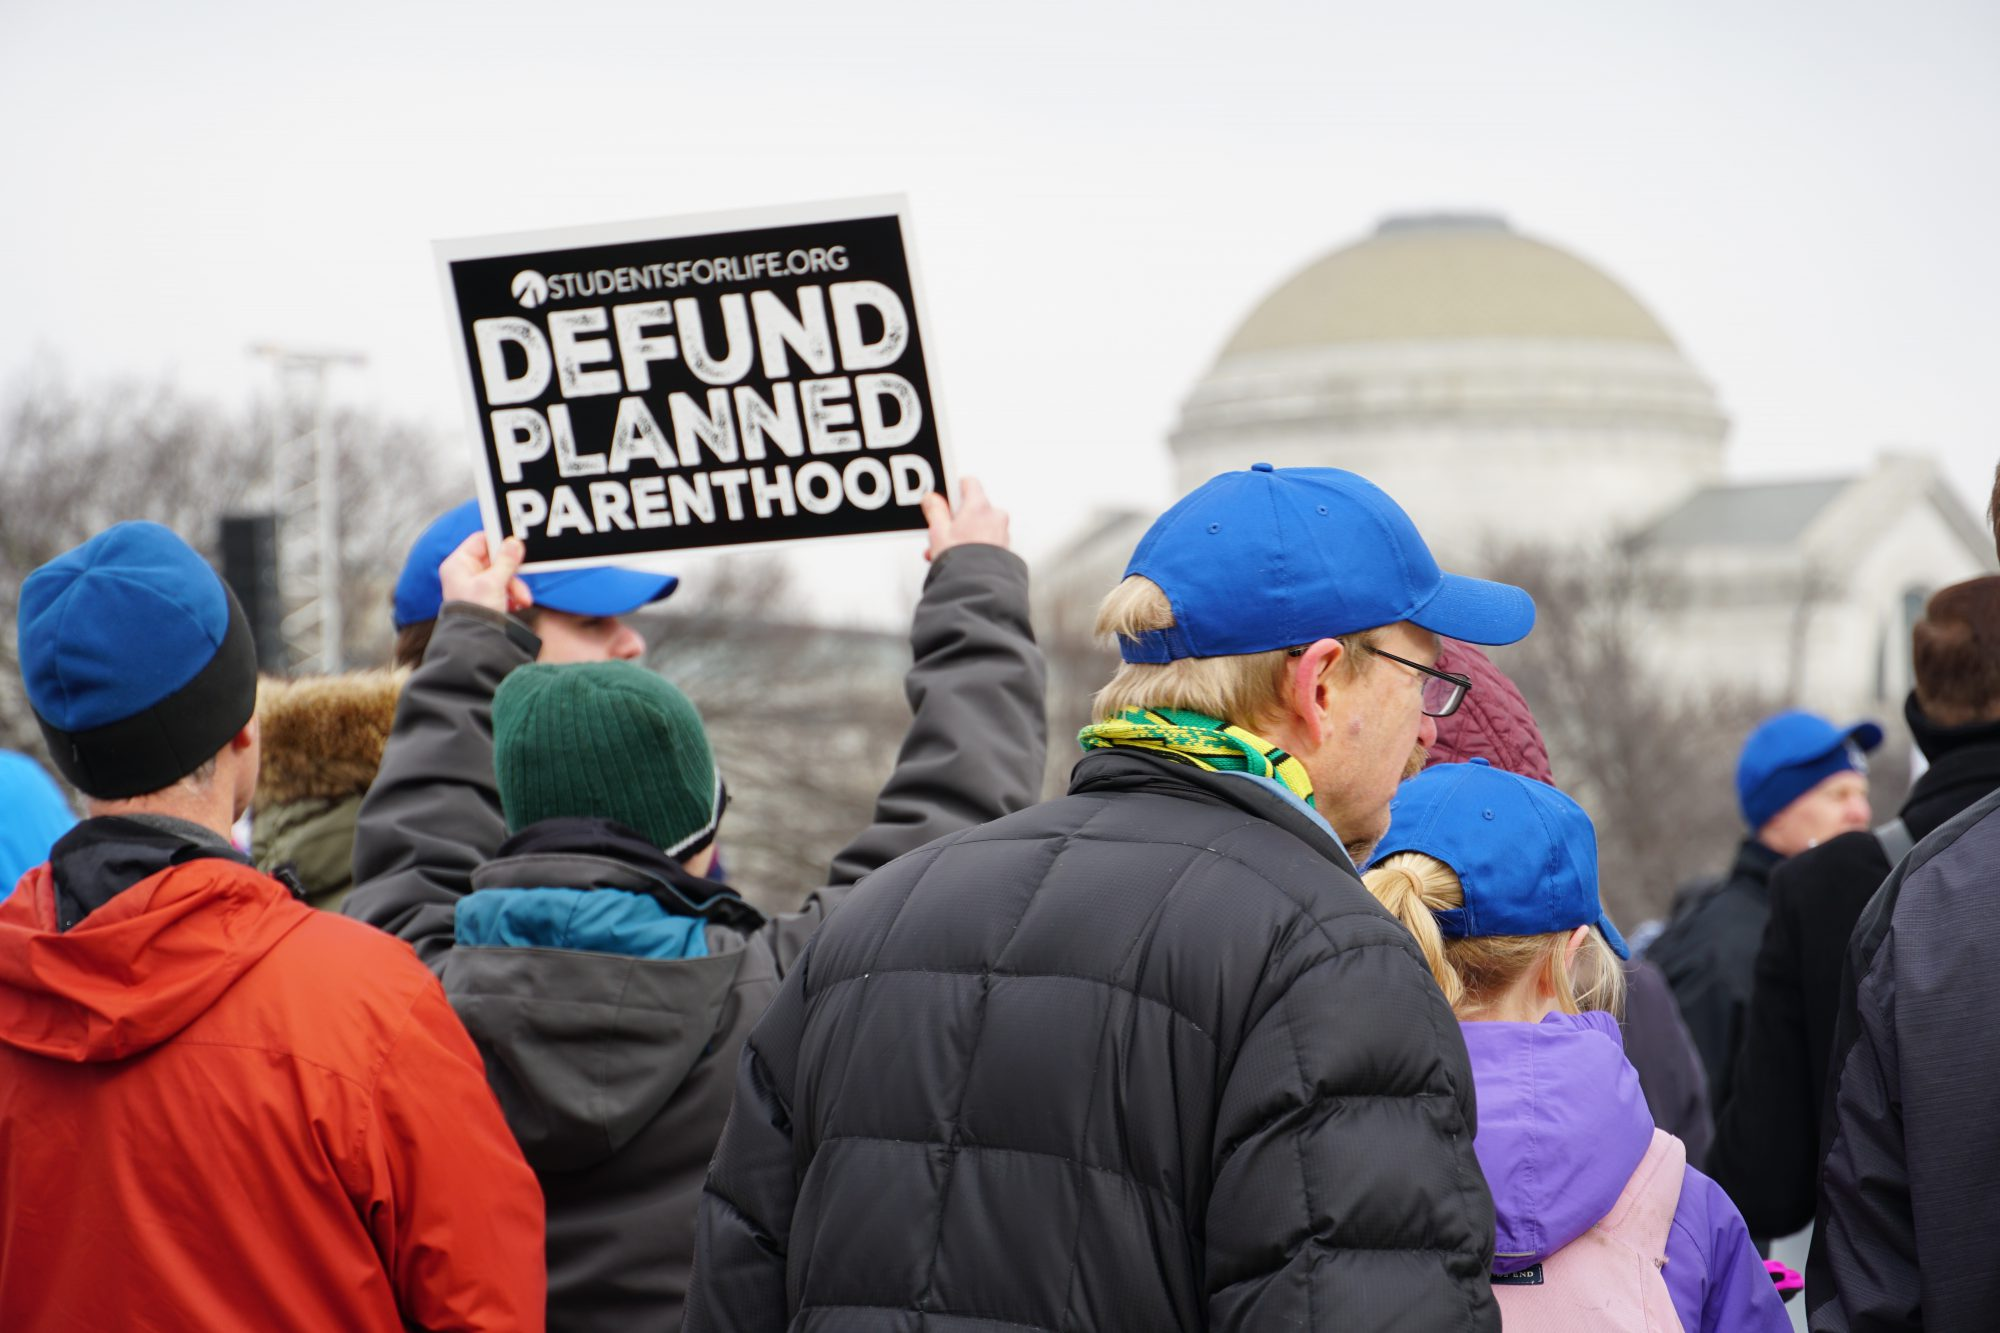 One of the marchers' goals is to defund Planned Parenthood. (Ester Wells/MNS)